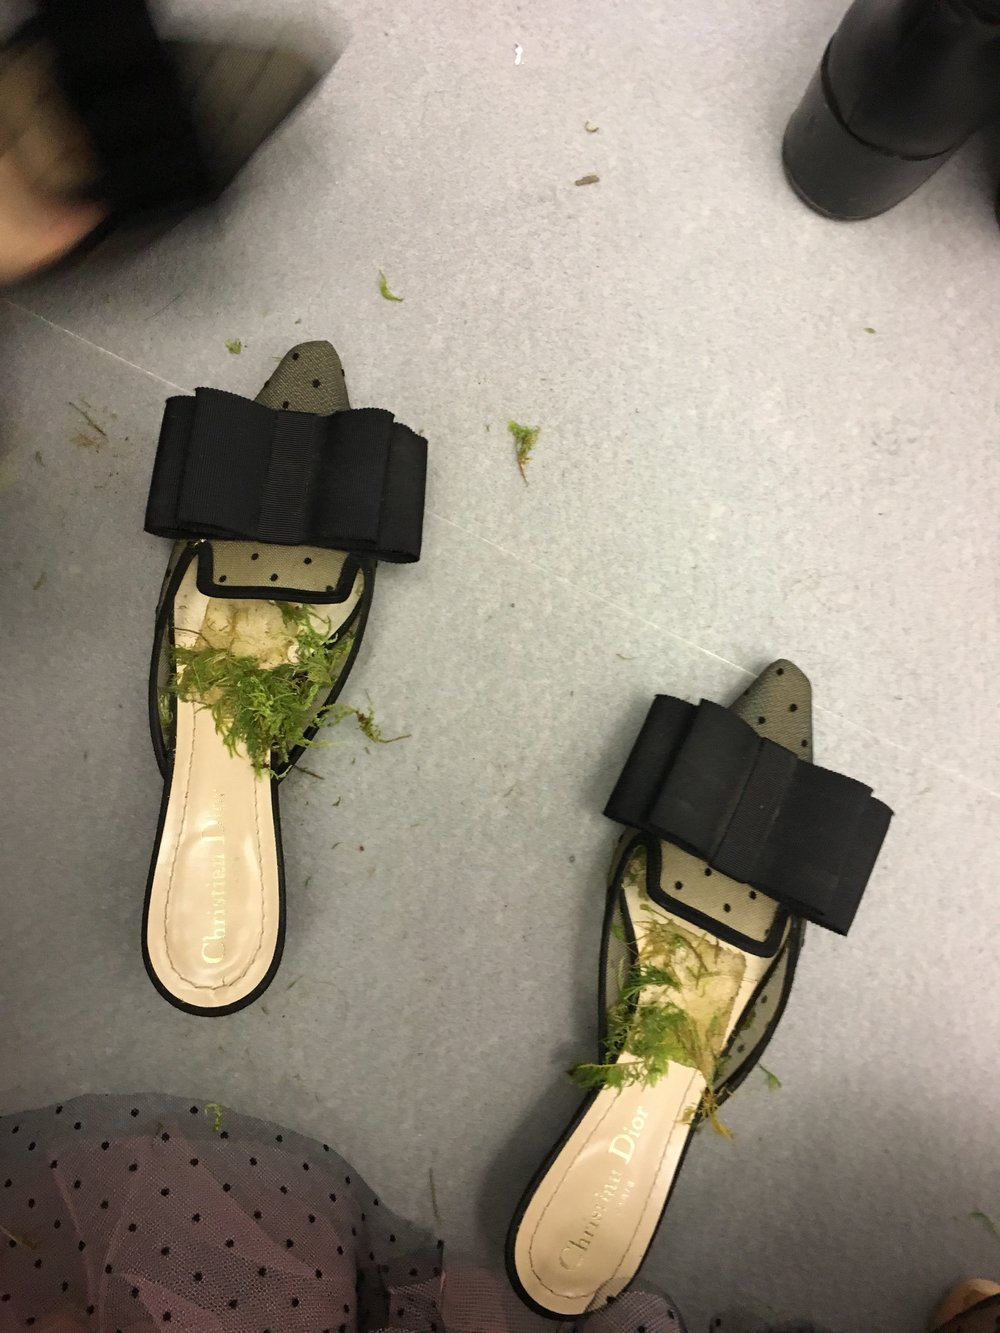 My Shoes Filled with Moss when I stepped off the Catwalk